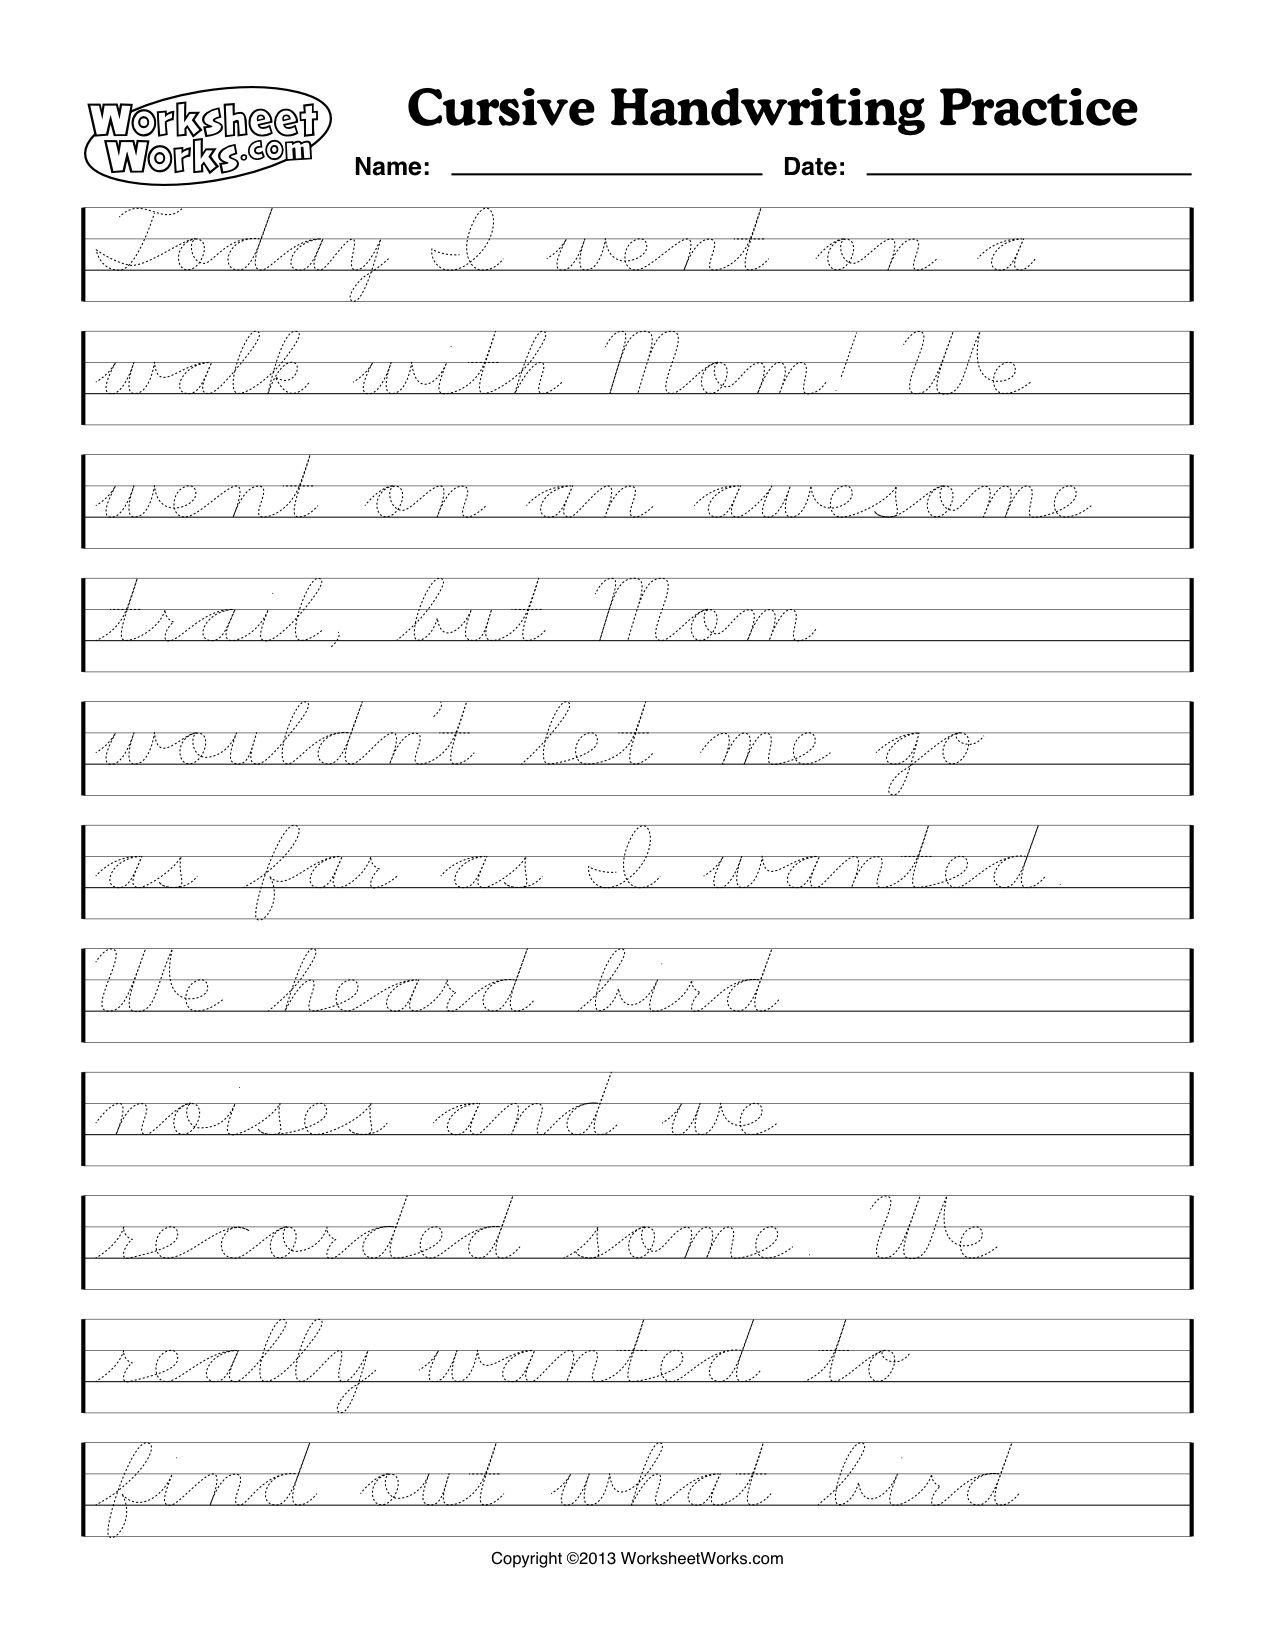 Printable Cursive Writing Paper - Koran.sticken.co | Printable Cursive Handwriting Worksheet Generator